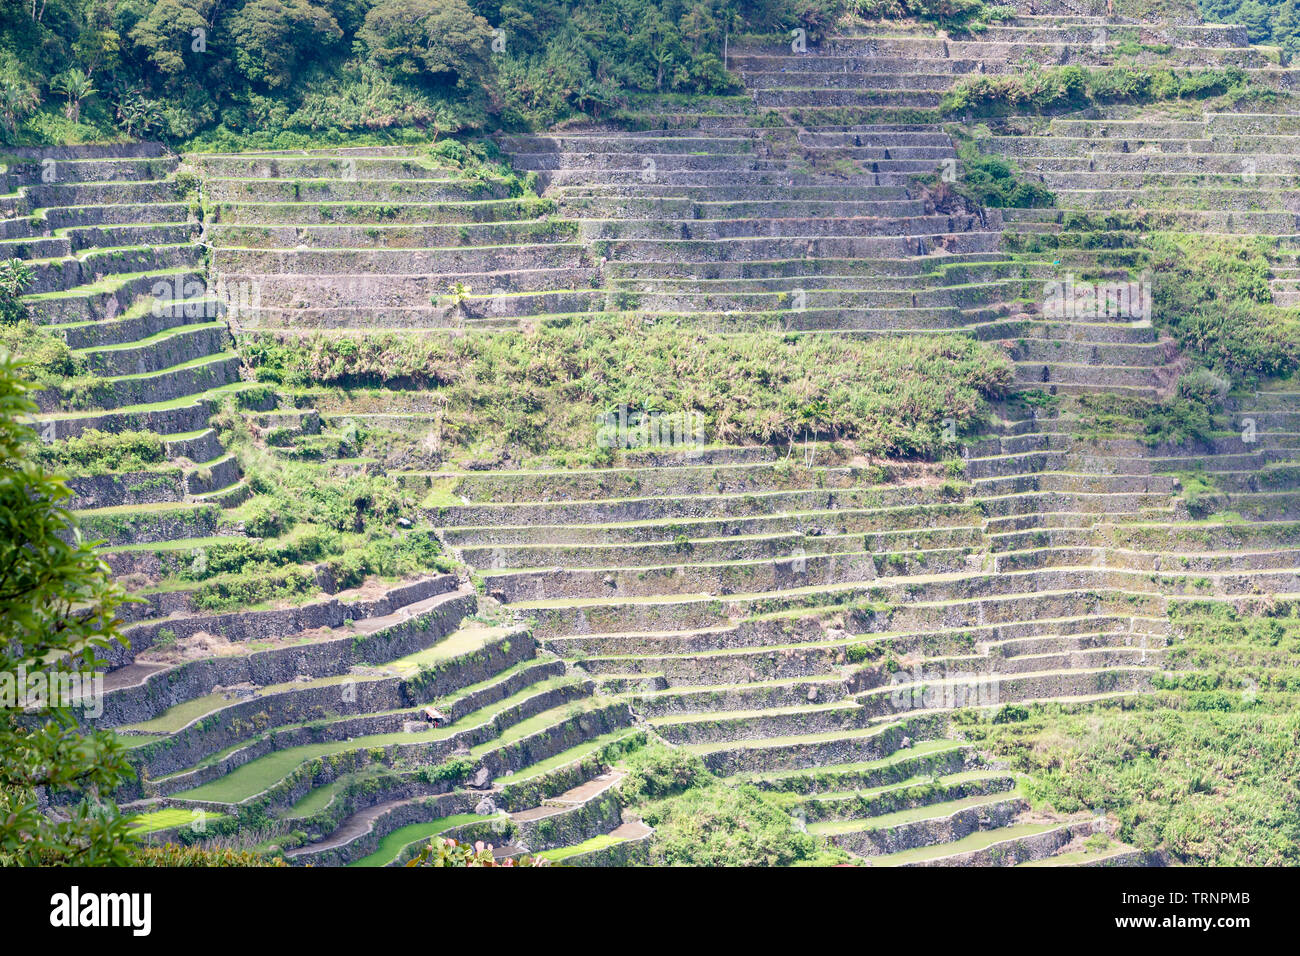 Batad rice terraces, near Banaue, Philippines - Stock Image